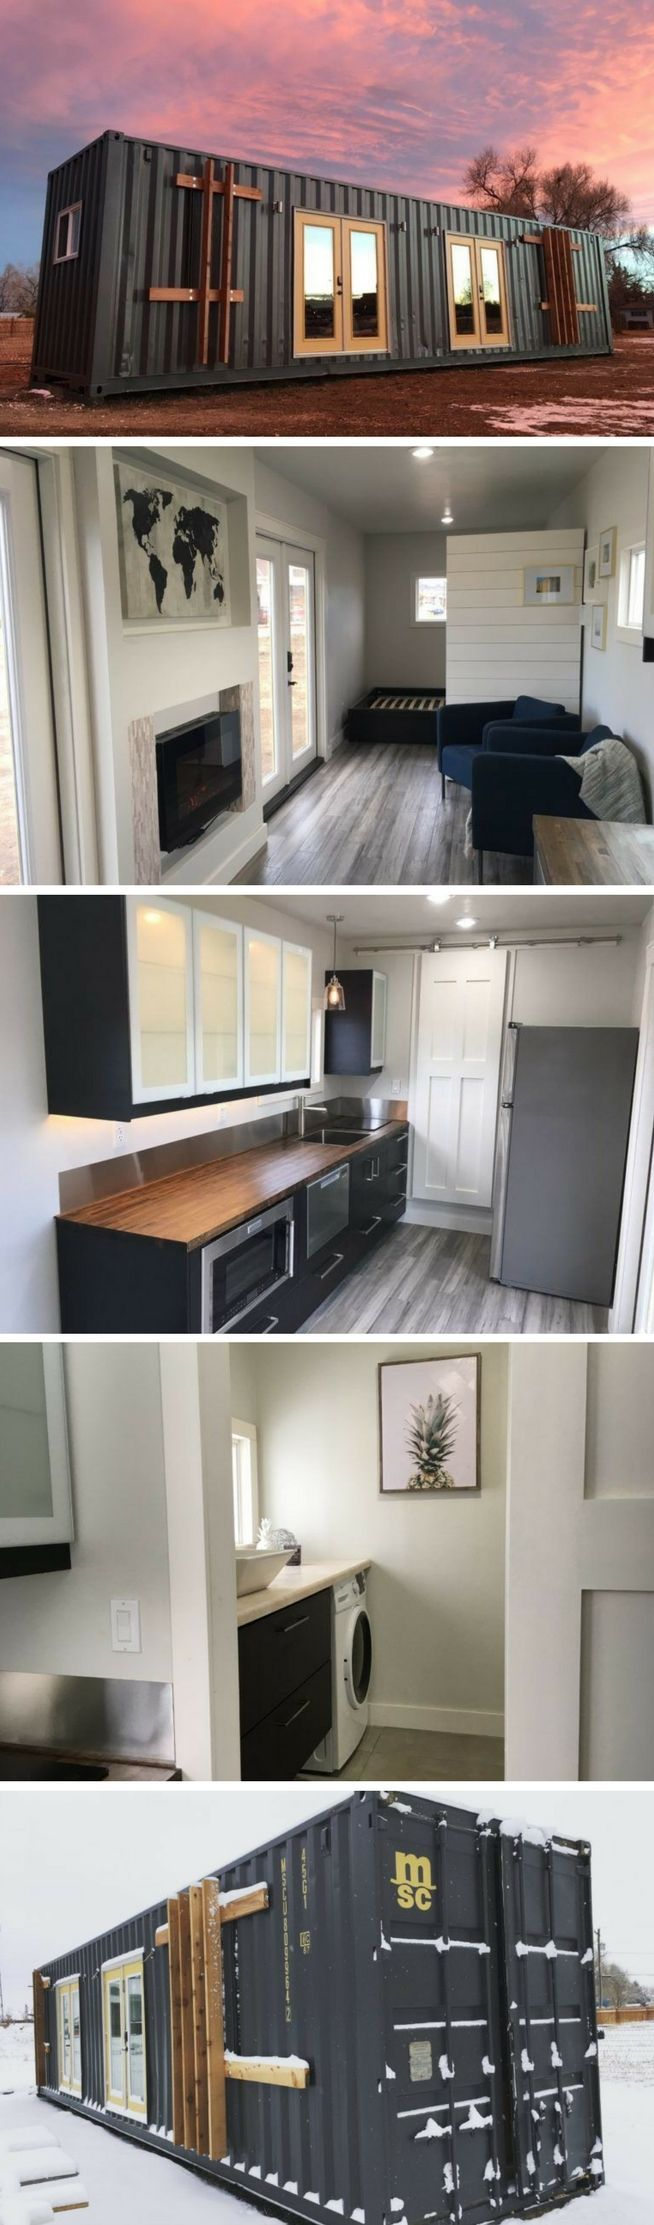 The Intellectual Tiny Container Home